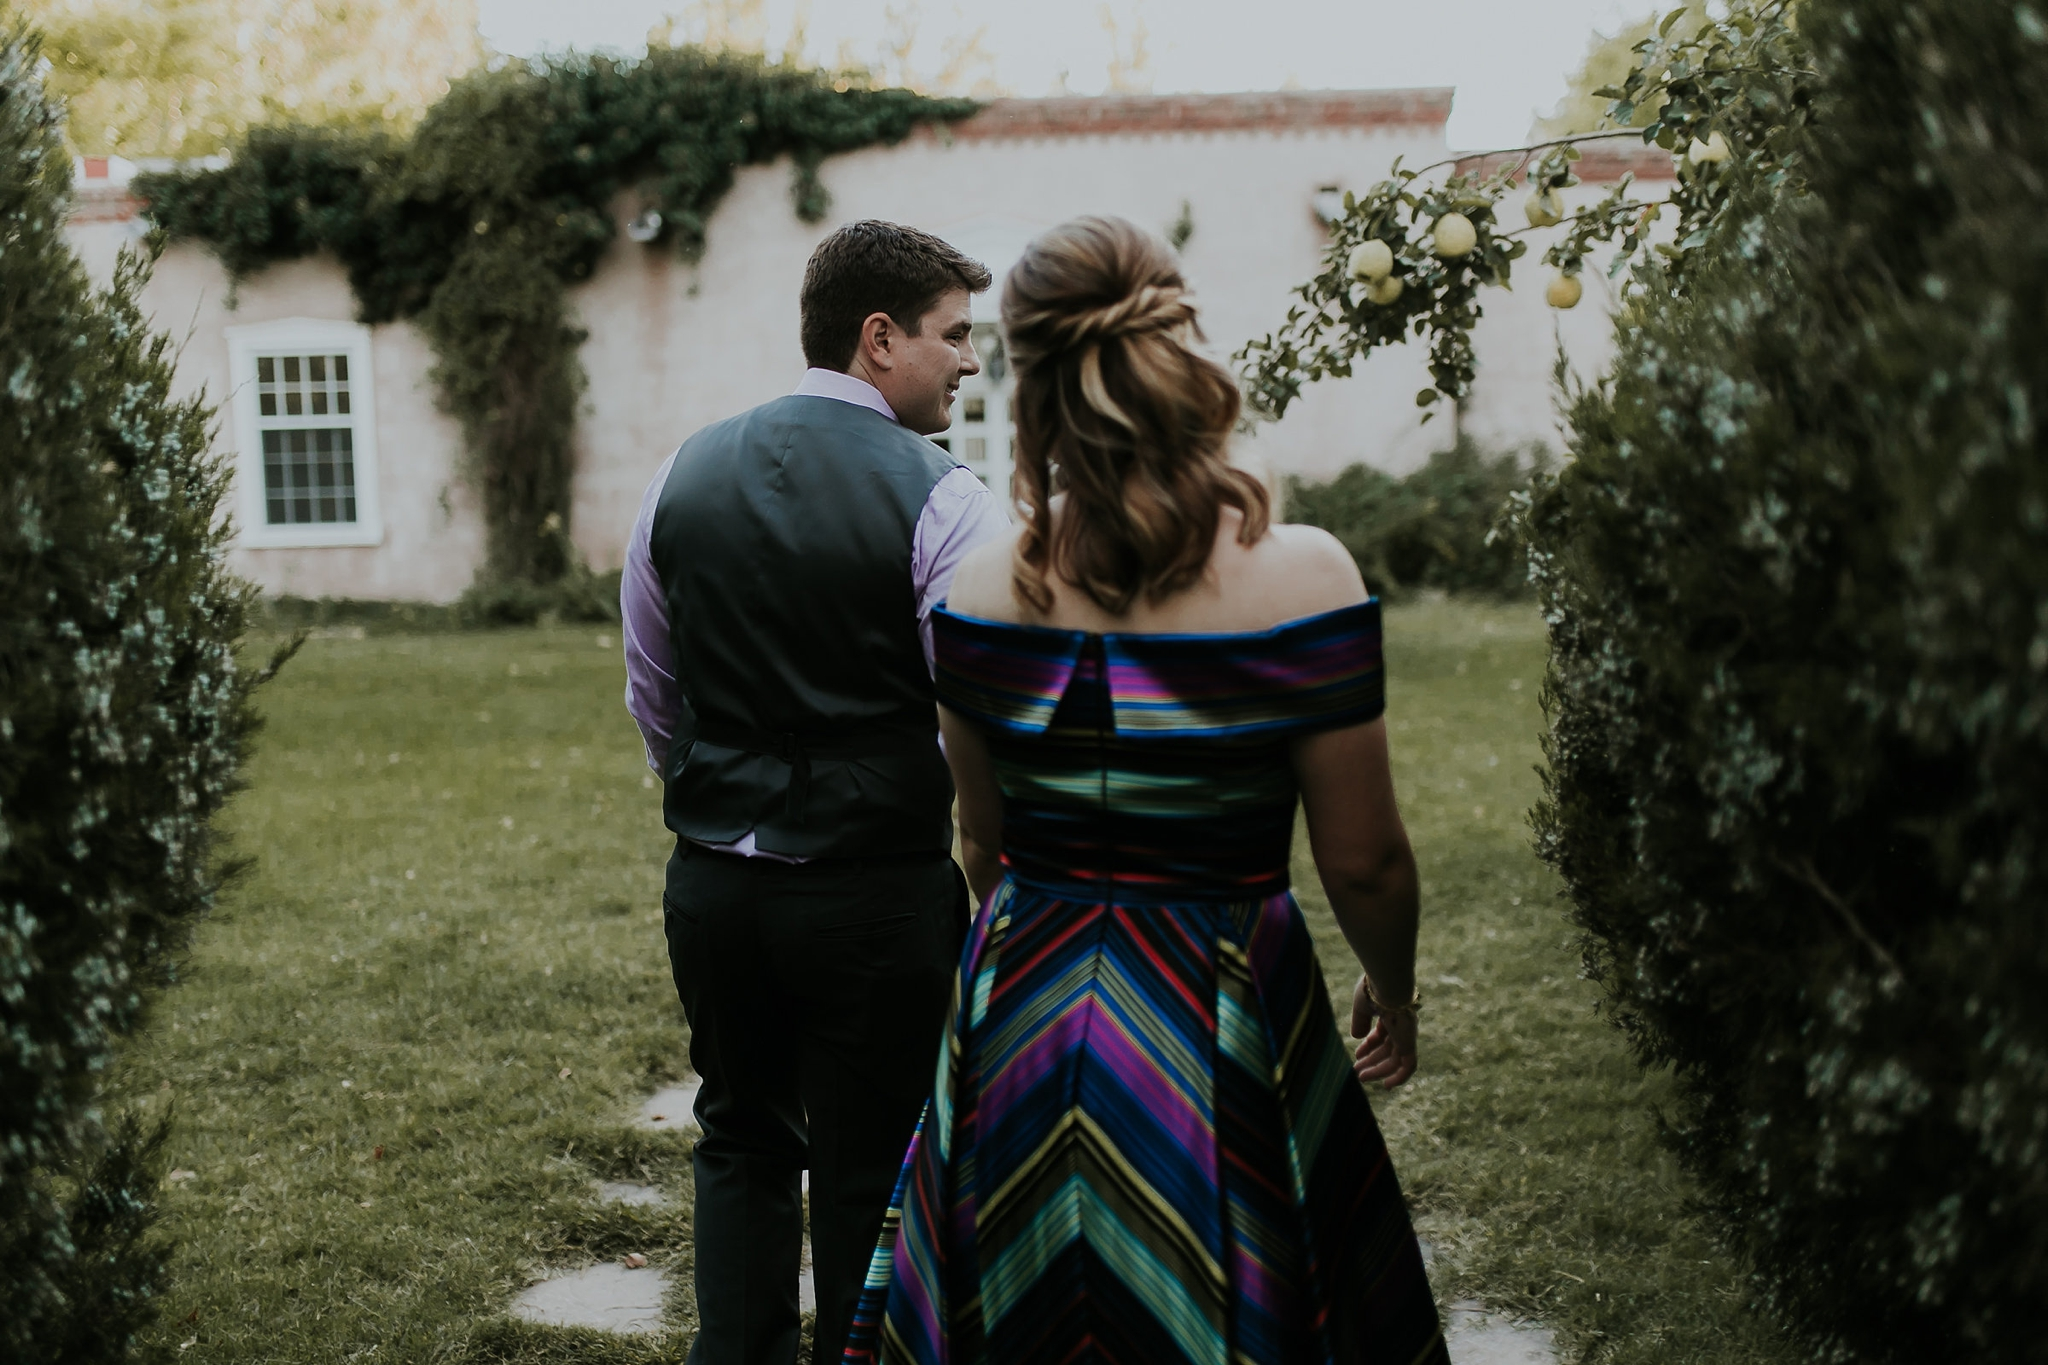 Alicia+lucia+photography+-+albuquerque+wedding+photographer+-+santa+fe+wedding+photography+-+new+mexico+wedding+photographer+-+new+mexico+wedding+-+los+poblanos+engagement+-+los+poblanos+wedding+-+farm+wedding+-+lavender+farm+wedding_0017.jpg